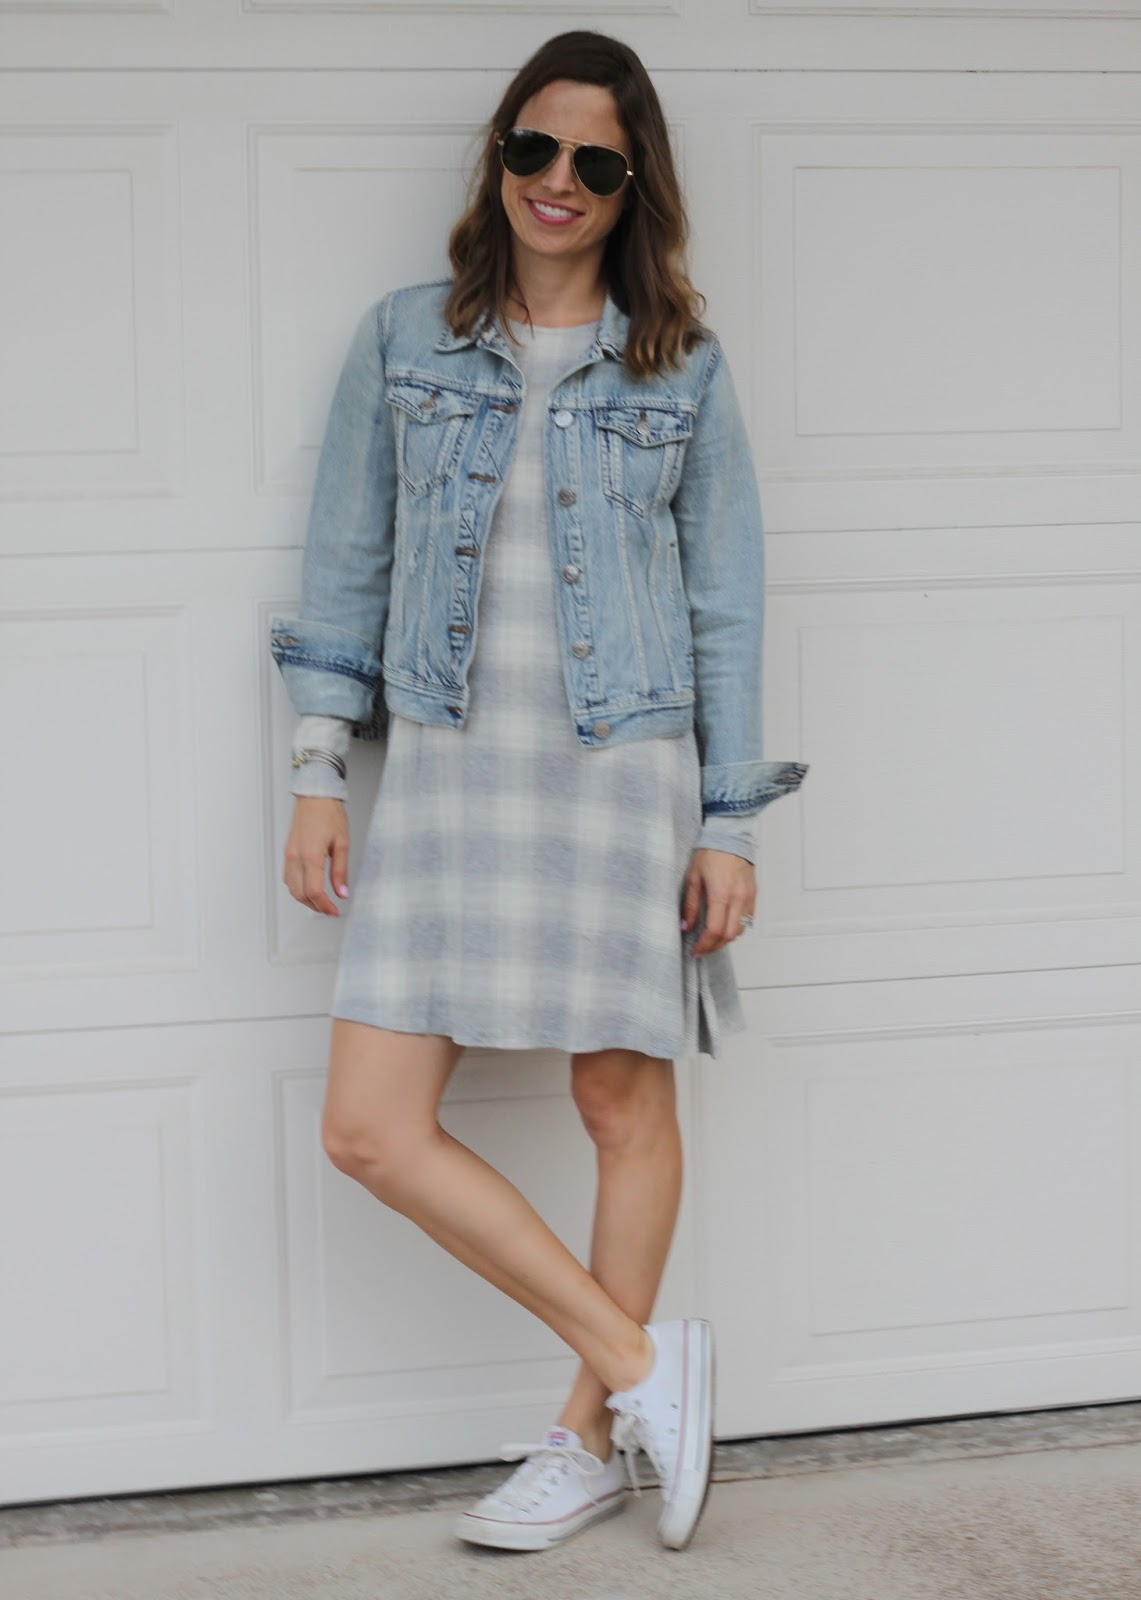 plaid dress and jean jacket